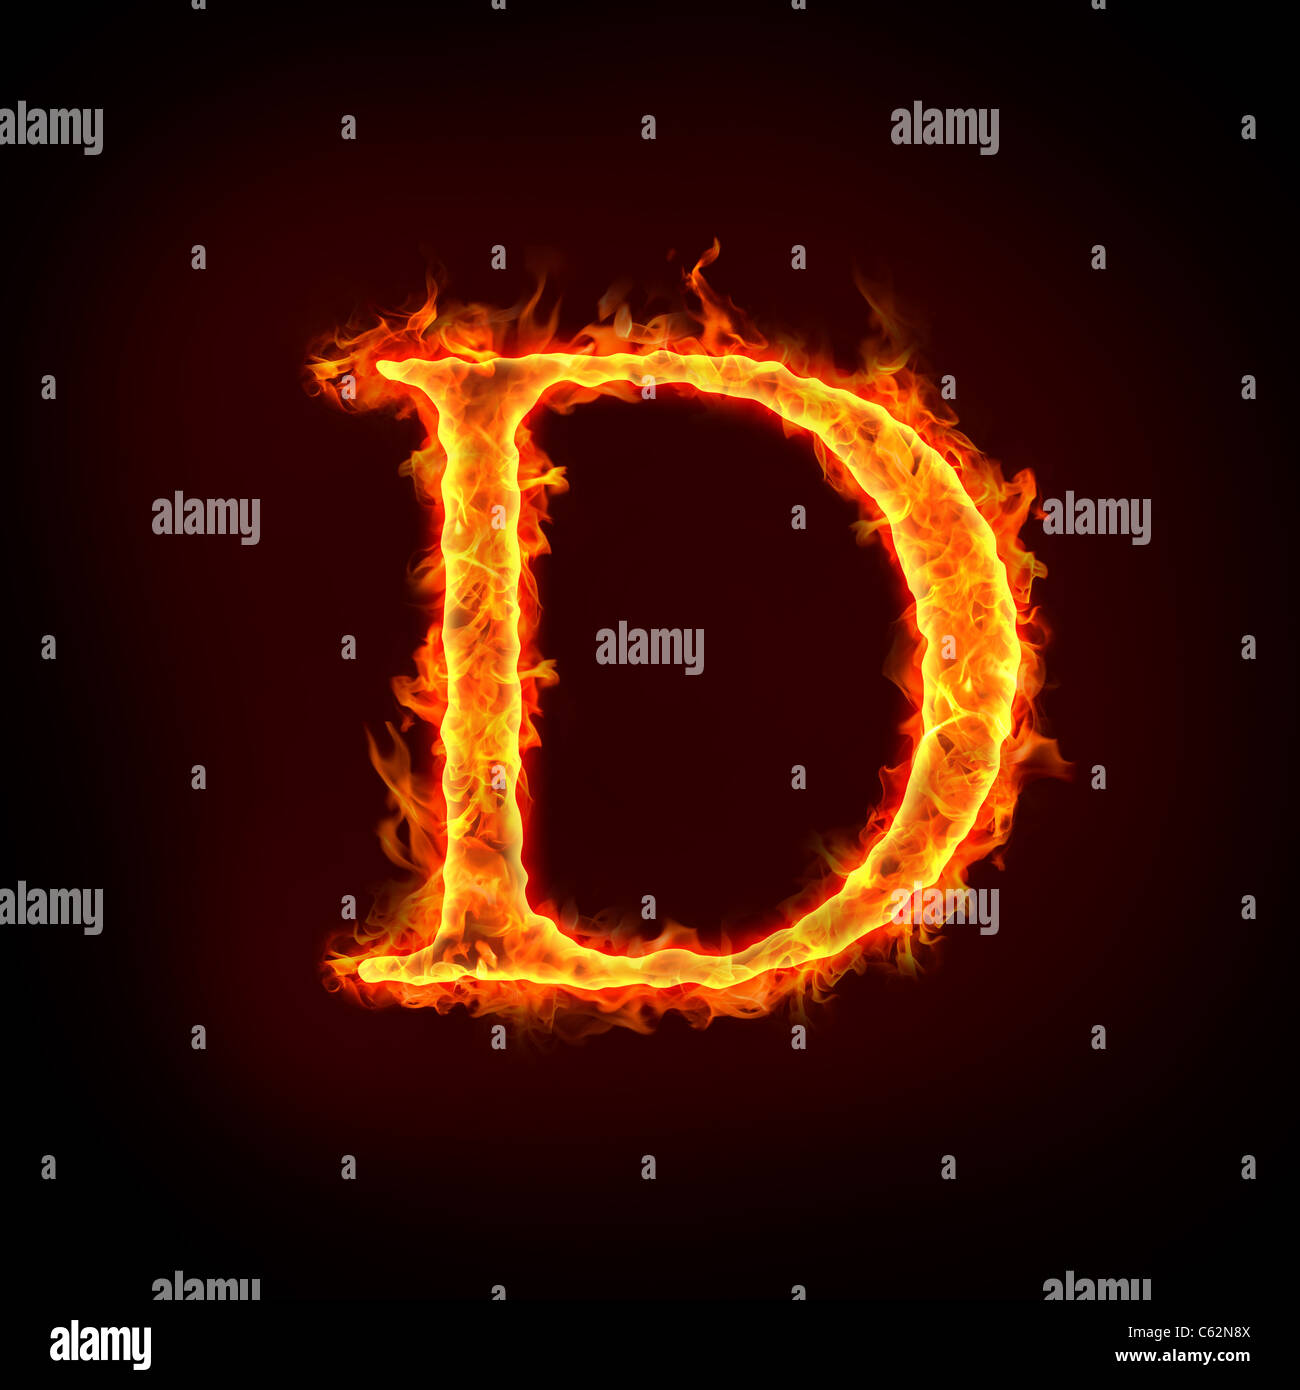 Letters alphabet in fire stock photos letters alphabet in fire fire alphabets in flame letter d stock image thecheapjerseys Images